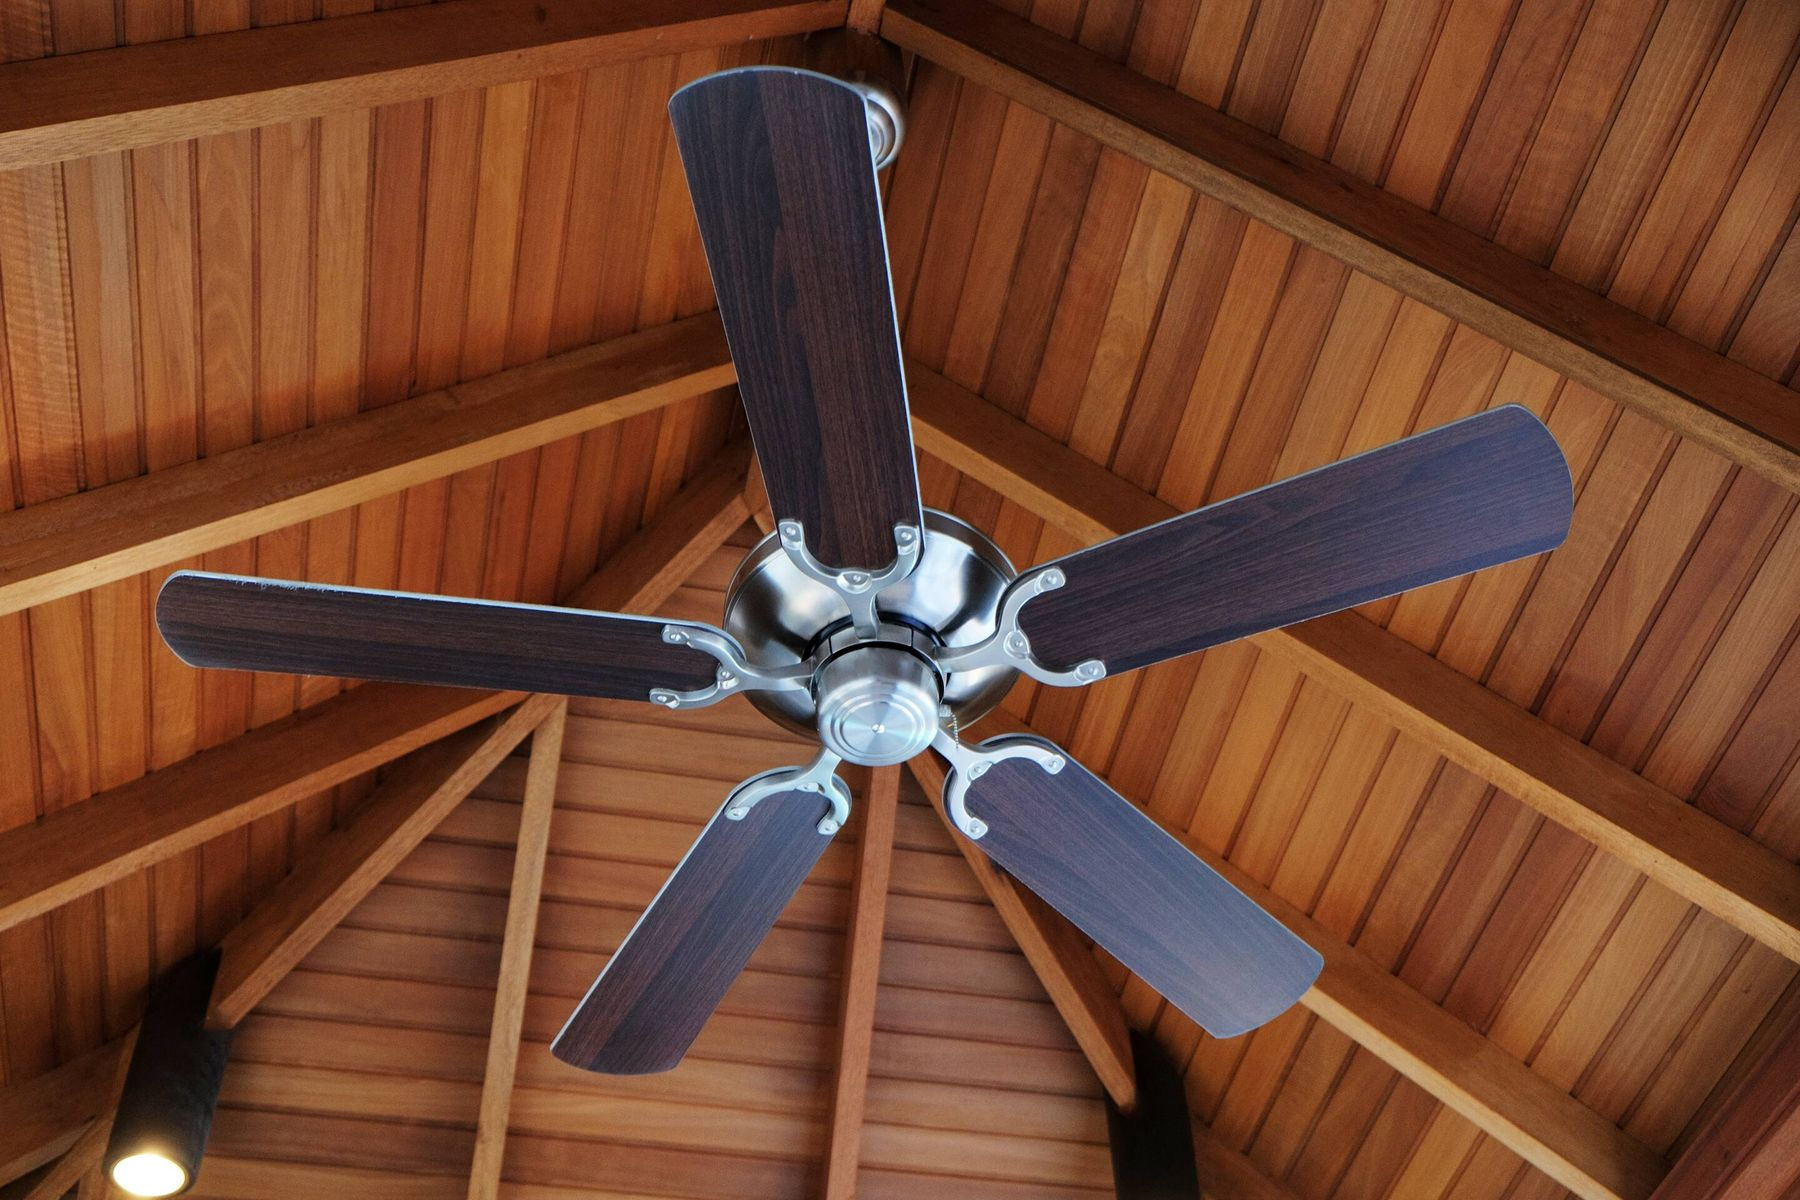 How to Clean Dirty Ceiling Fan | Cleanipedia